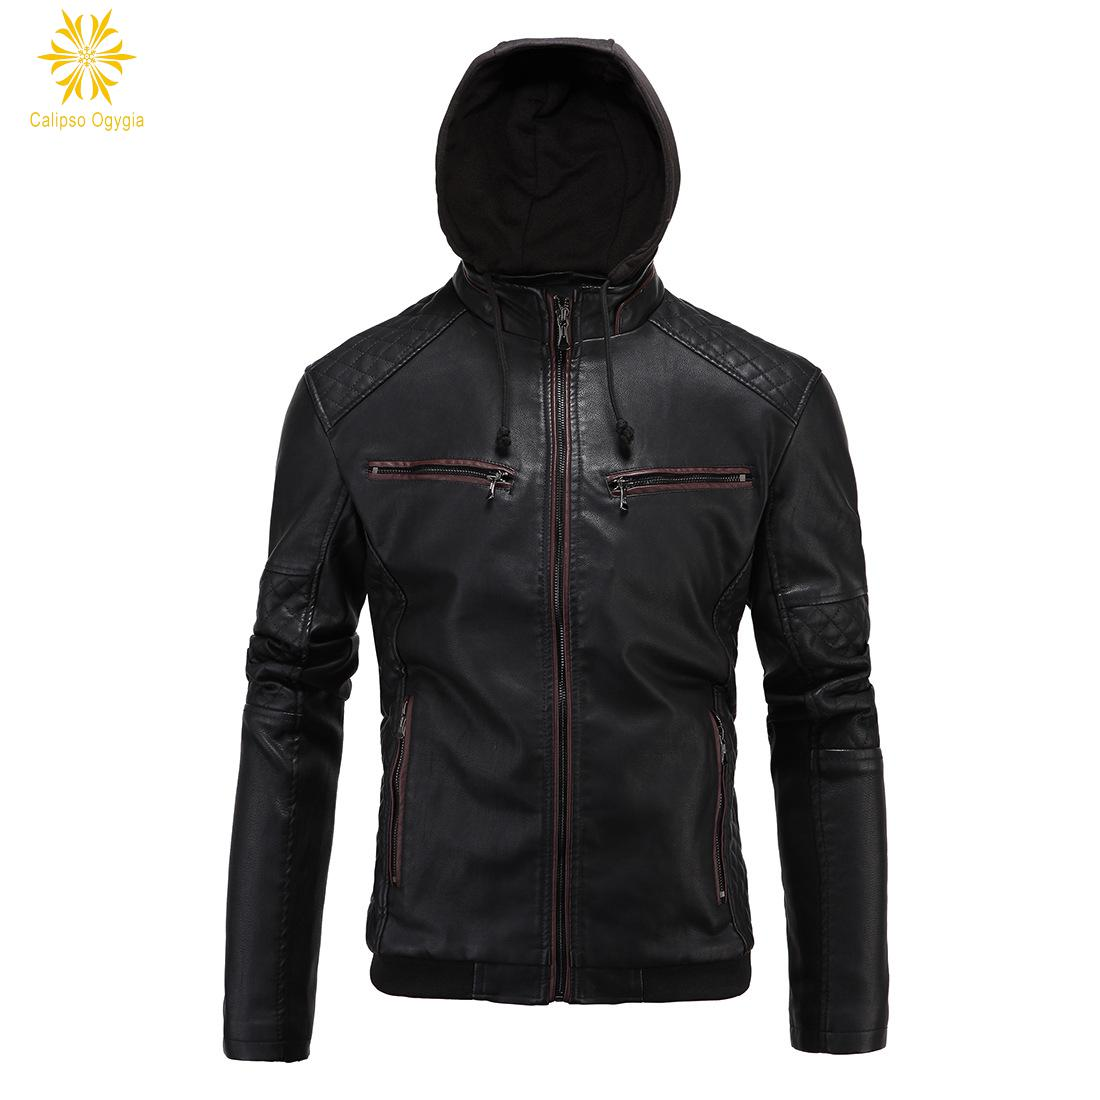 Leather jacket and hoodie - New Men S Straight Hoodie Hooded Thick Winter Black Leather Motorcycle Jackets Warm Cotton Coat Thick Jacket